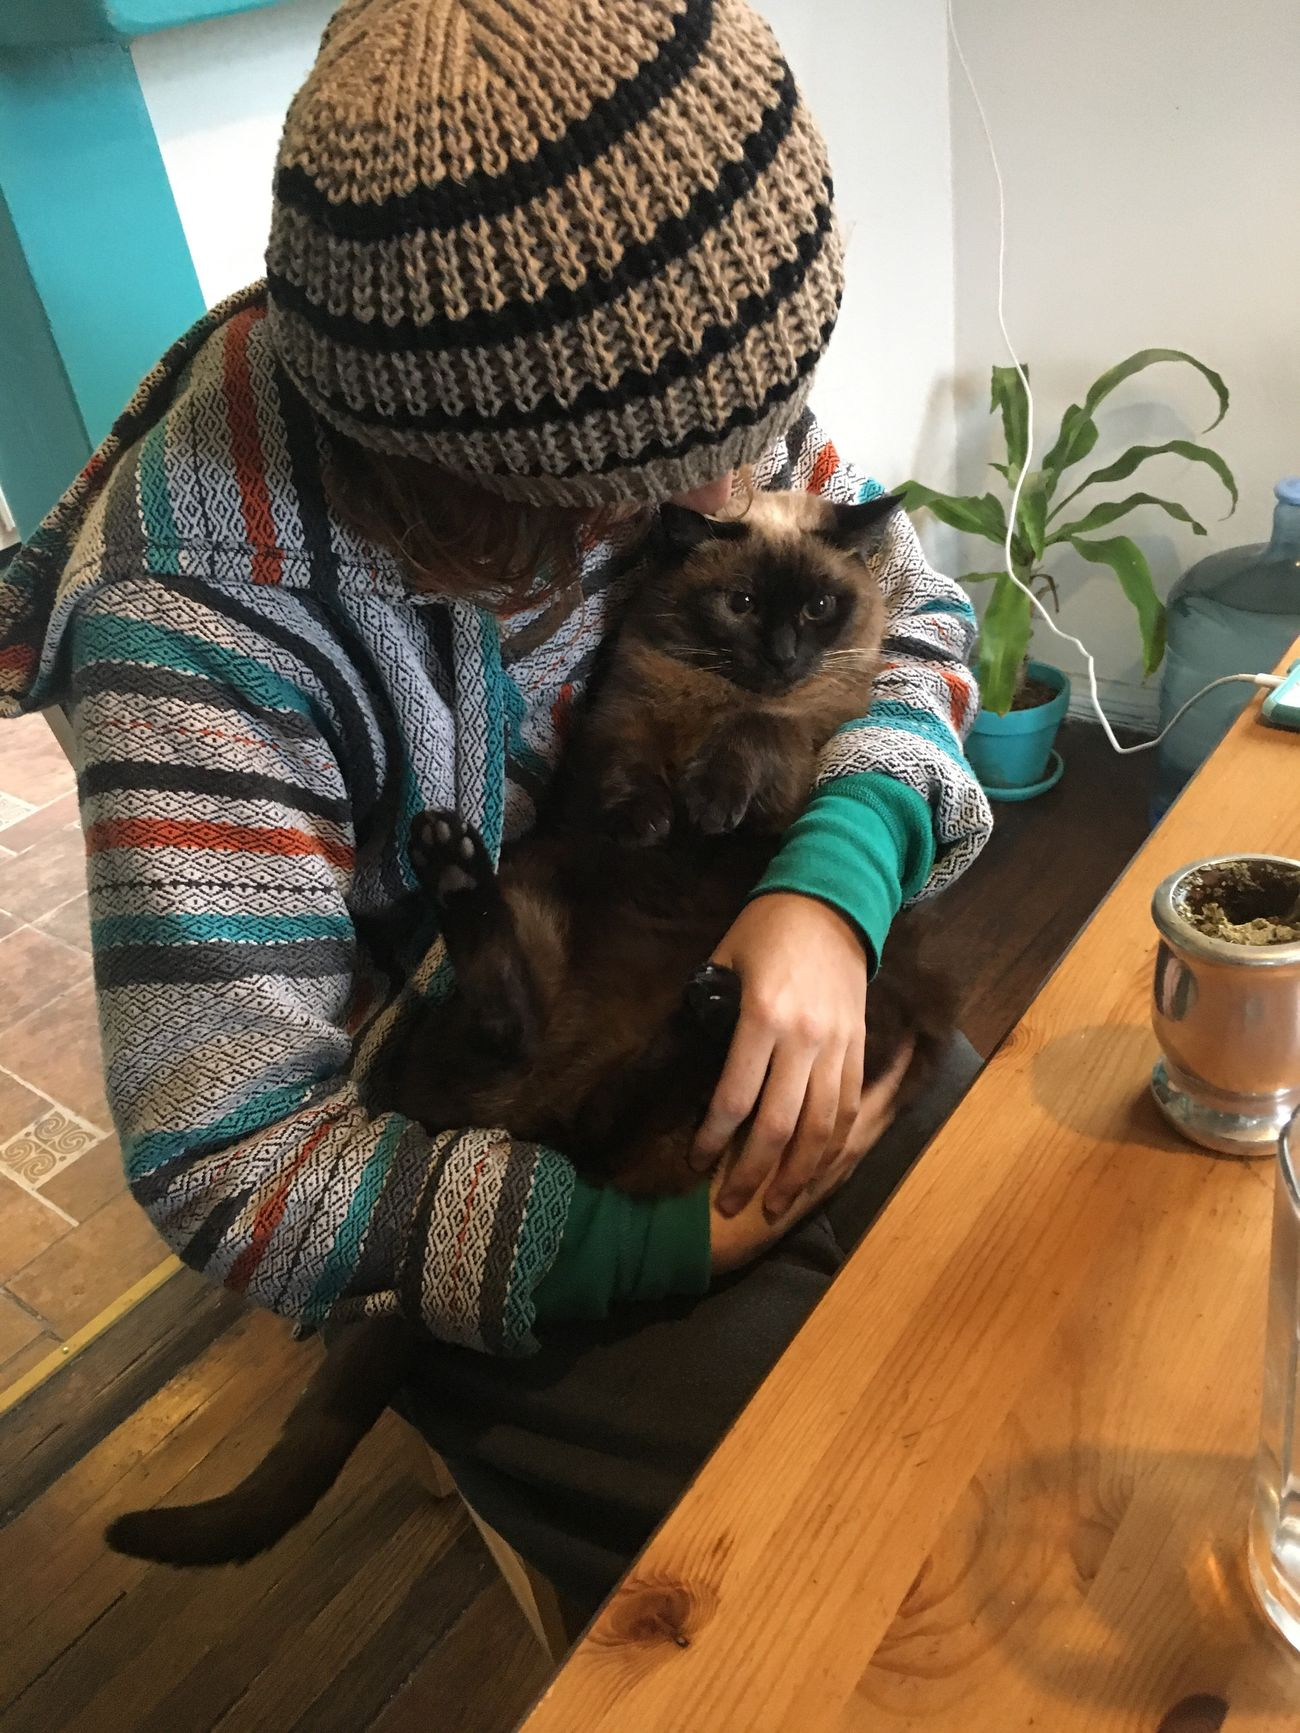 One Animal Pets Indoors  Domestic Cat Domestic Animals Mammal One Person Domestic Life Day Home Interior People Table Siamese Cat Cat Cats Fat Cat Hug Squeeze Kiss Cradle  Cuddles Cuddling Hippie Animal Themes Cozy